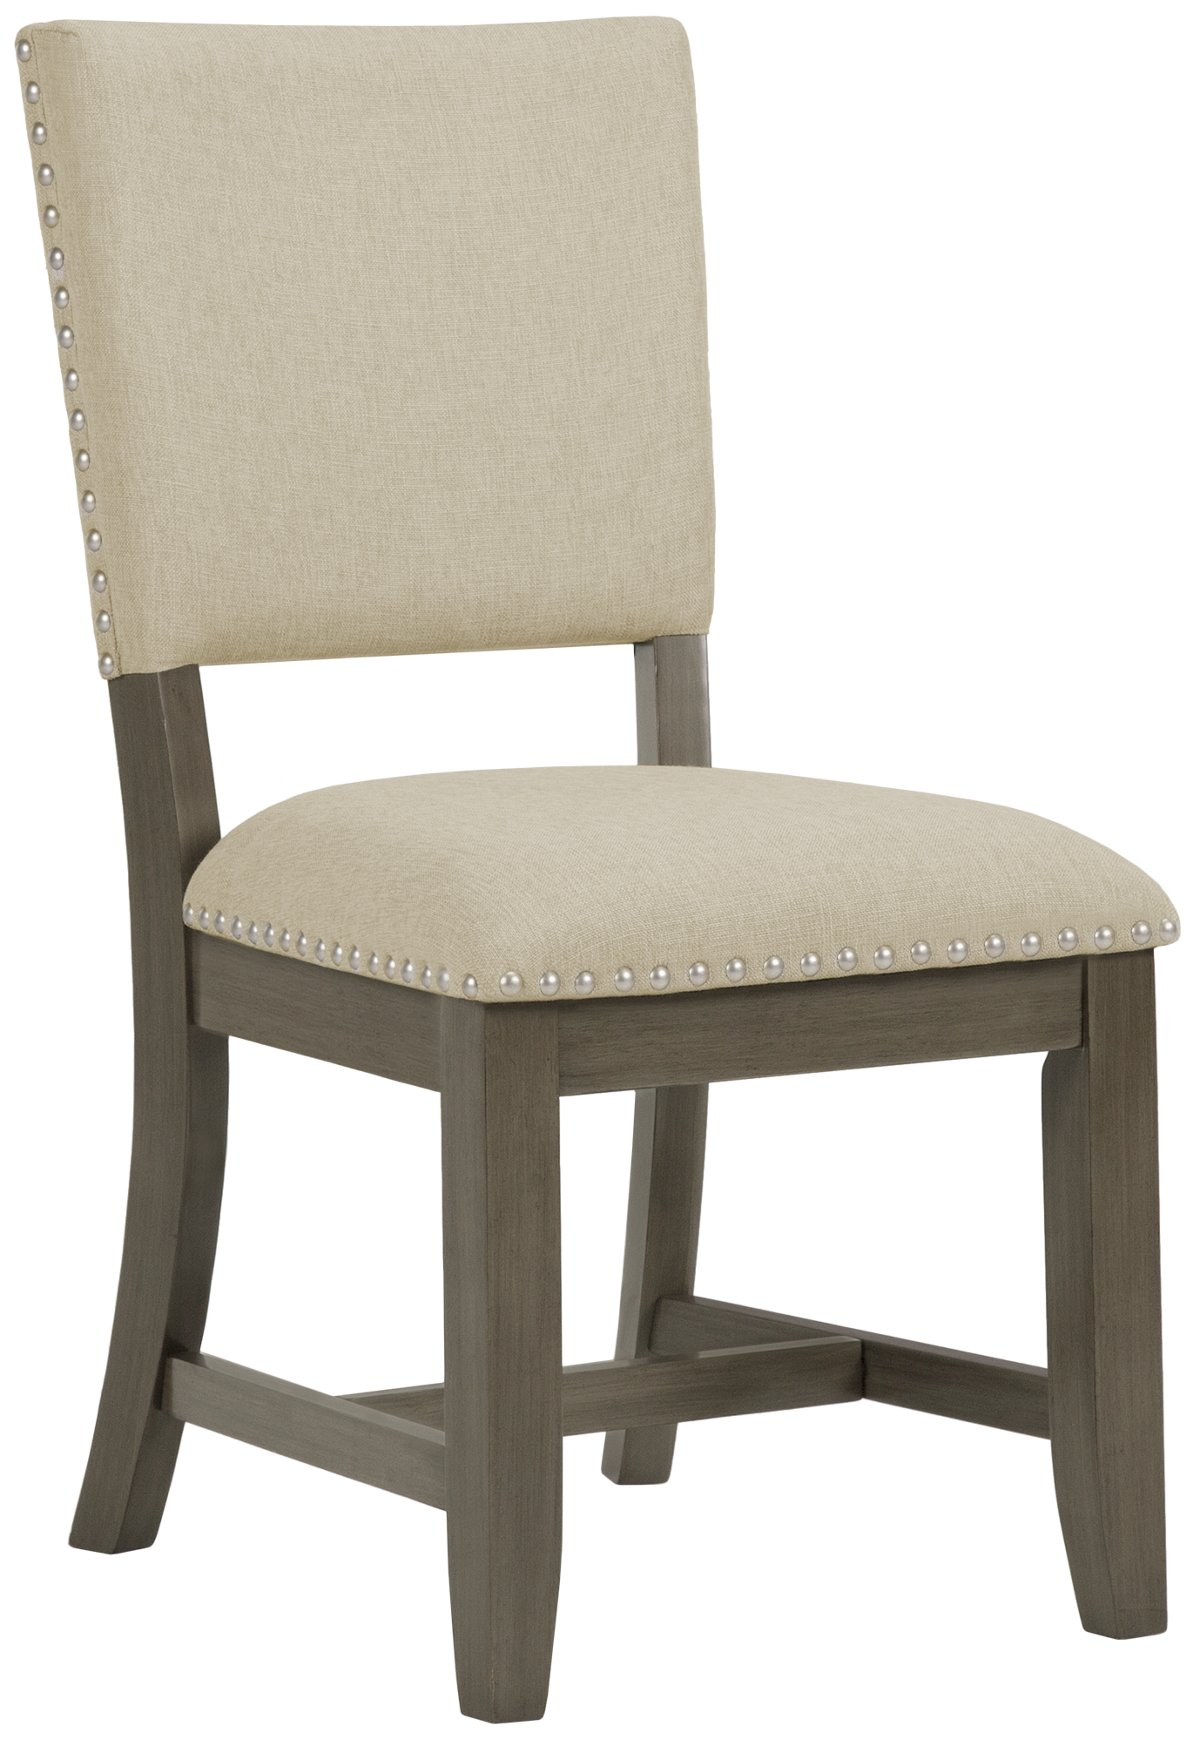 Upholstered Chairs Images city furniture: omaha gray rectangular table & 4 upholstered chairs